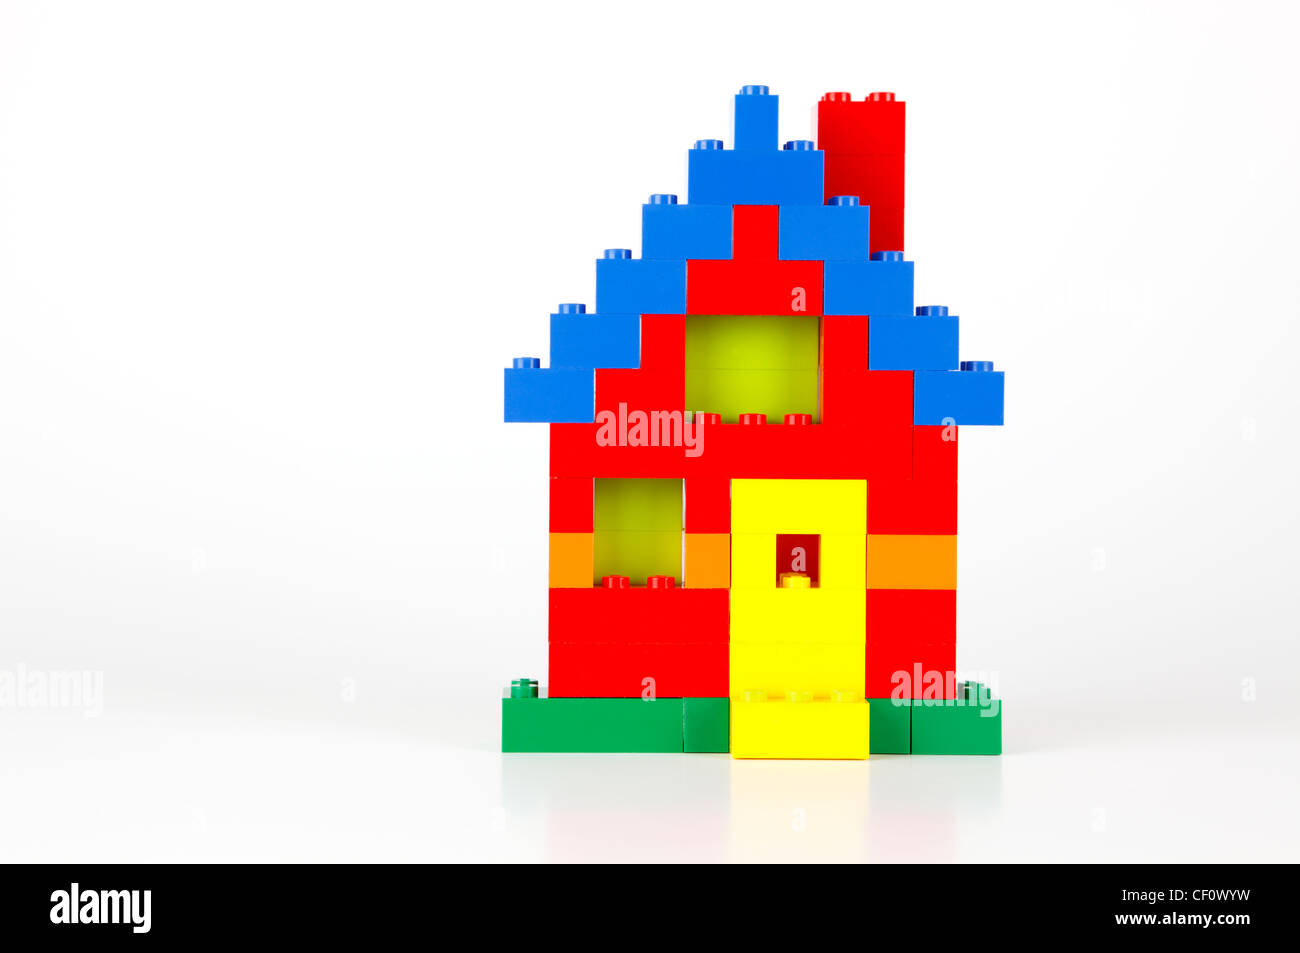 Lego Bricks Brick Stock Photos Lego Bricks Brick Stock Images Alamy